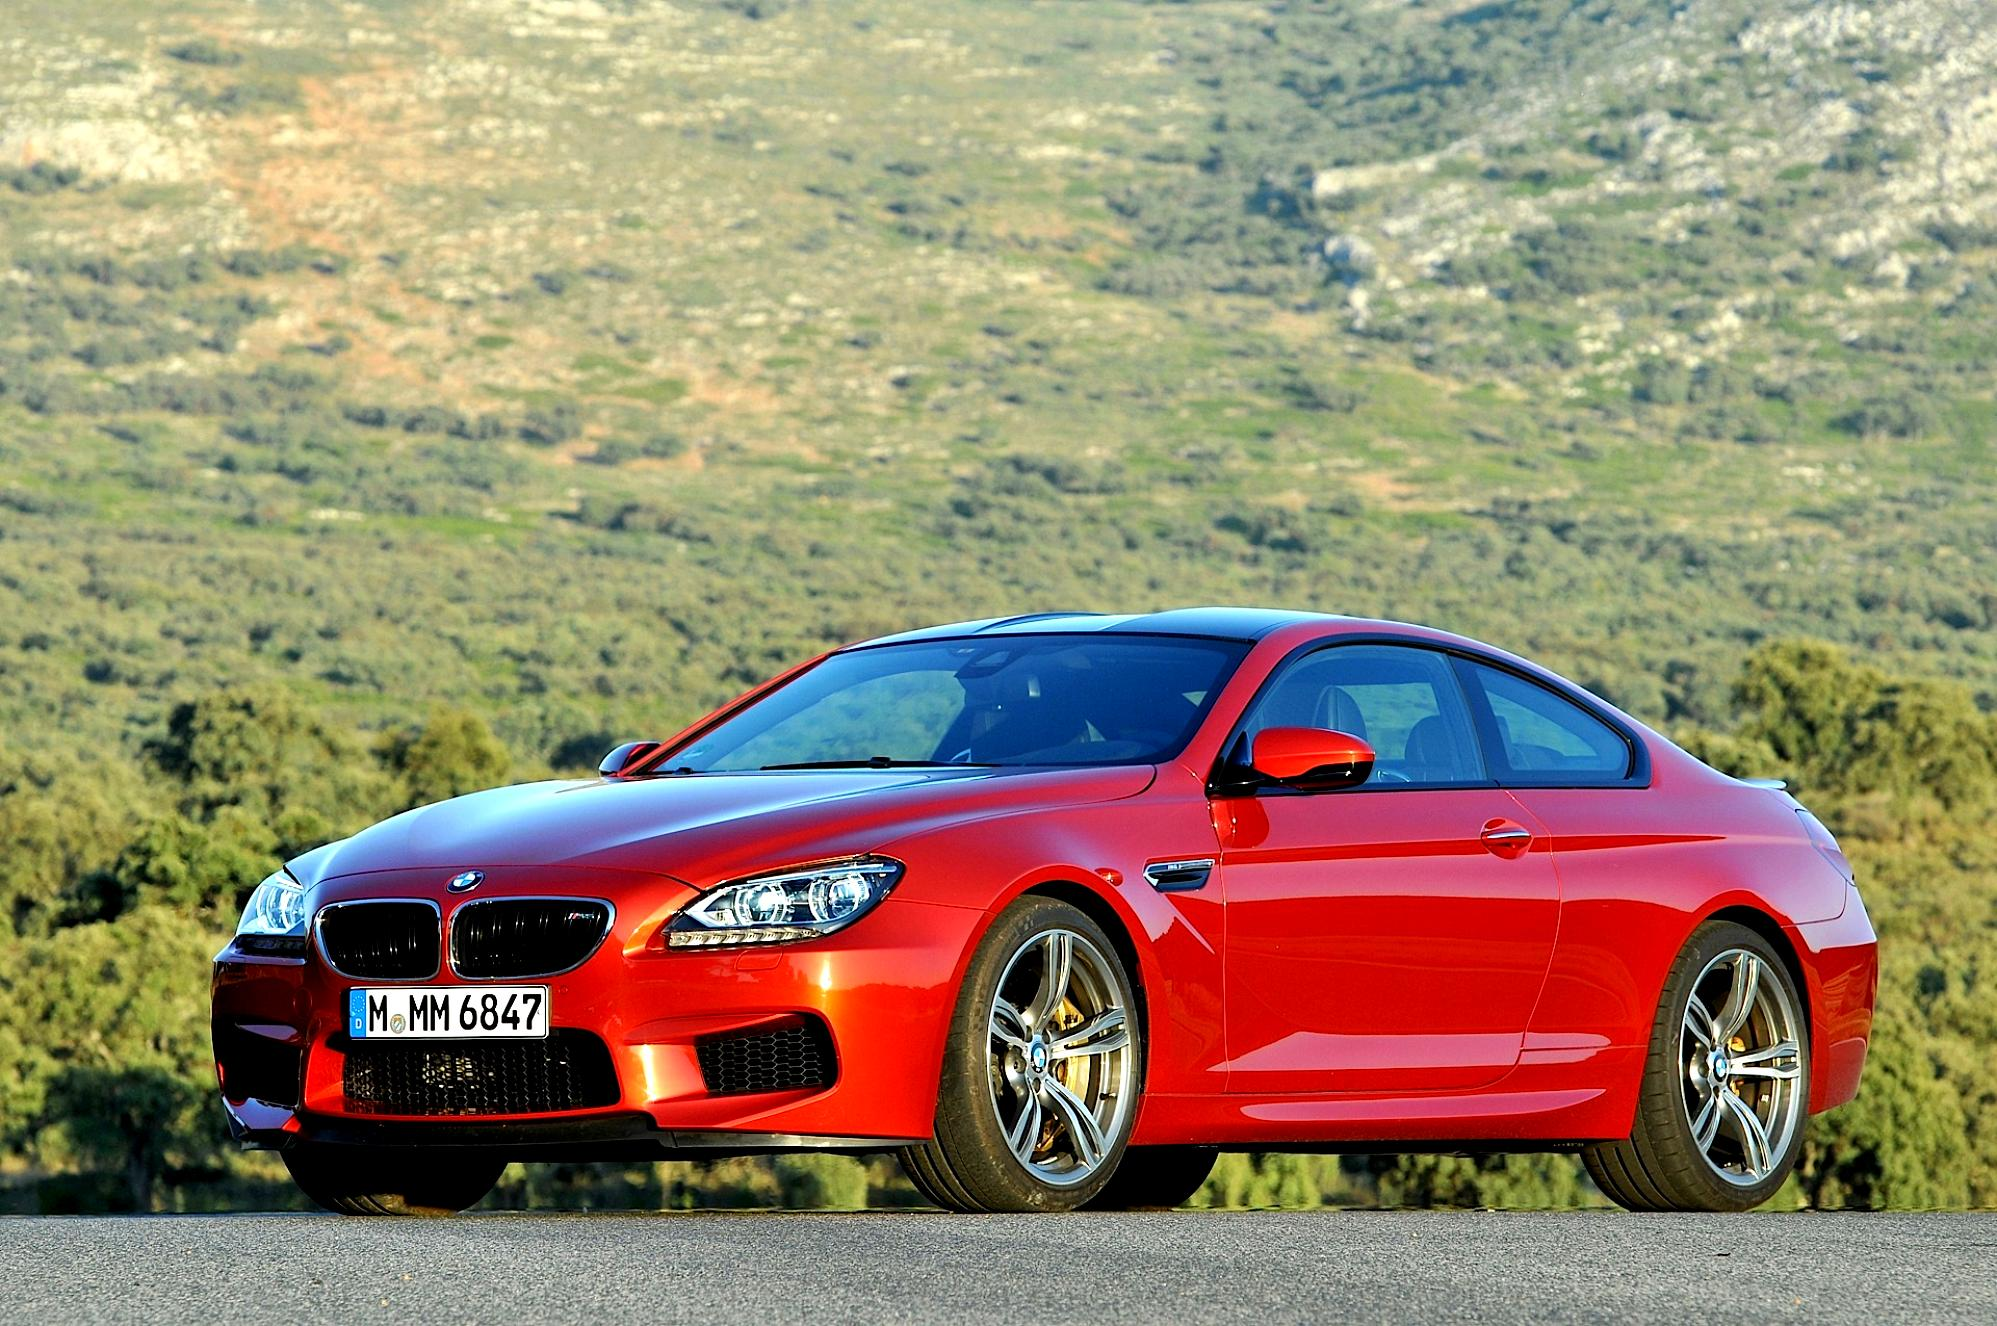 BMW M6 Coupe F13 2012 #83